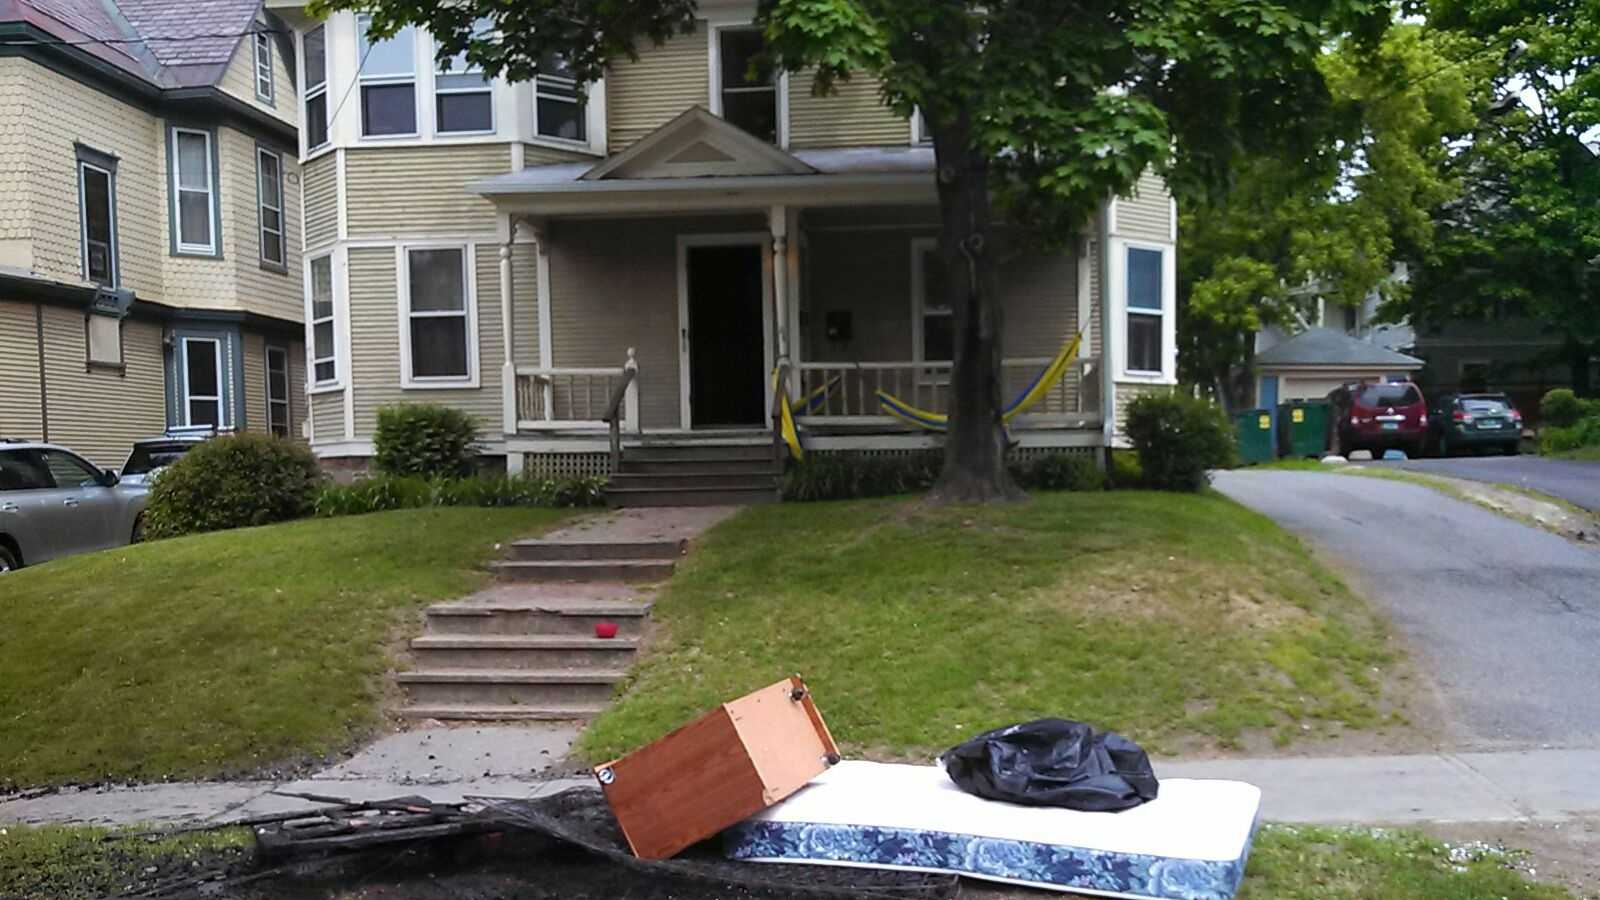 Police investigating couch, mattress fires